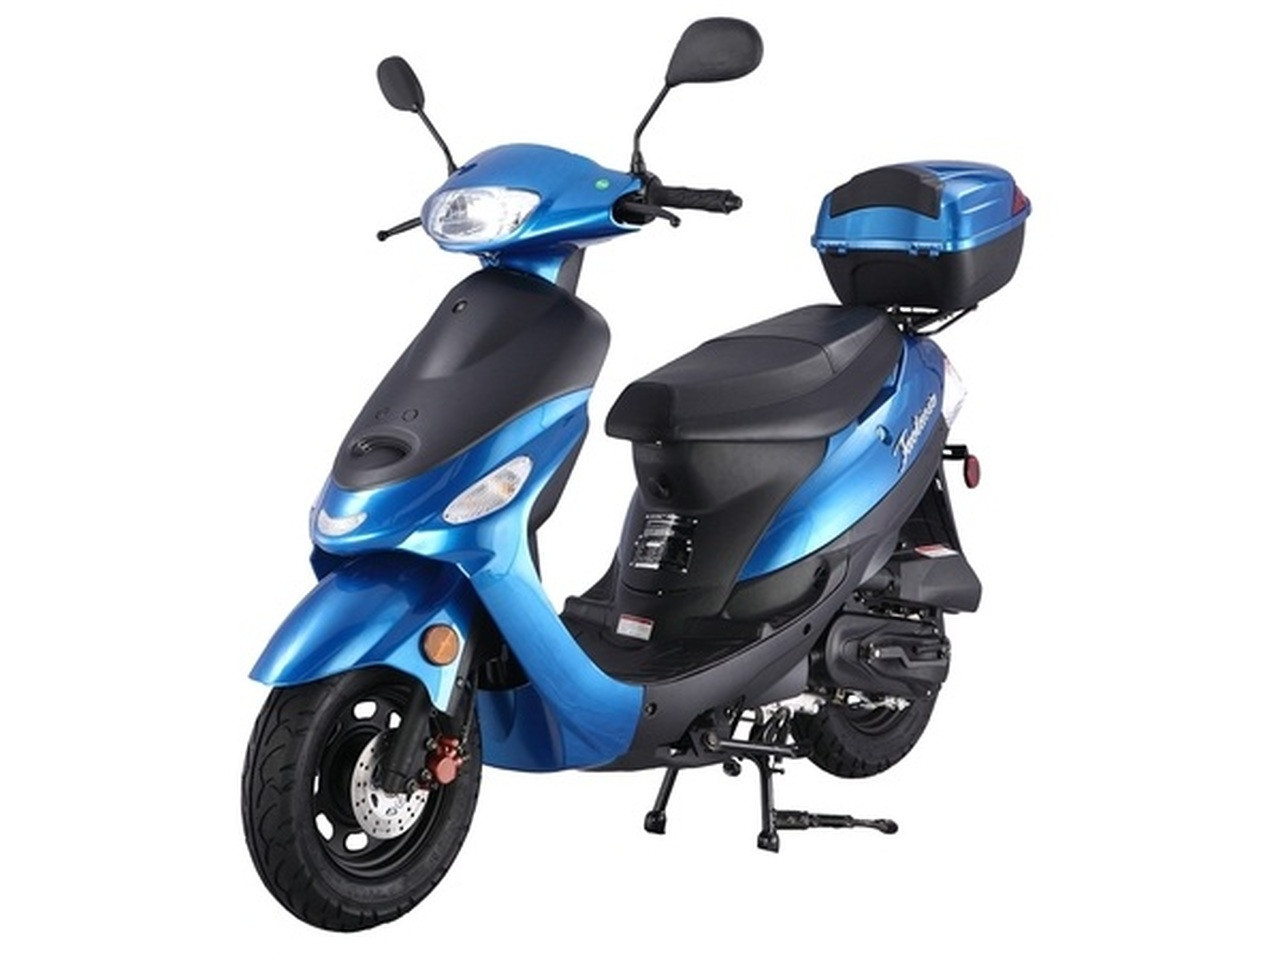 Taotao ATM 50-A1 Gas Street Legal Scooter, Electric with keys, kick start back up Scooter - Fully Assembled and Tested